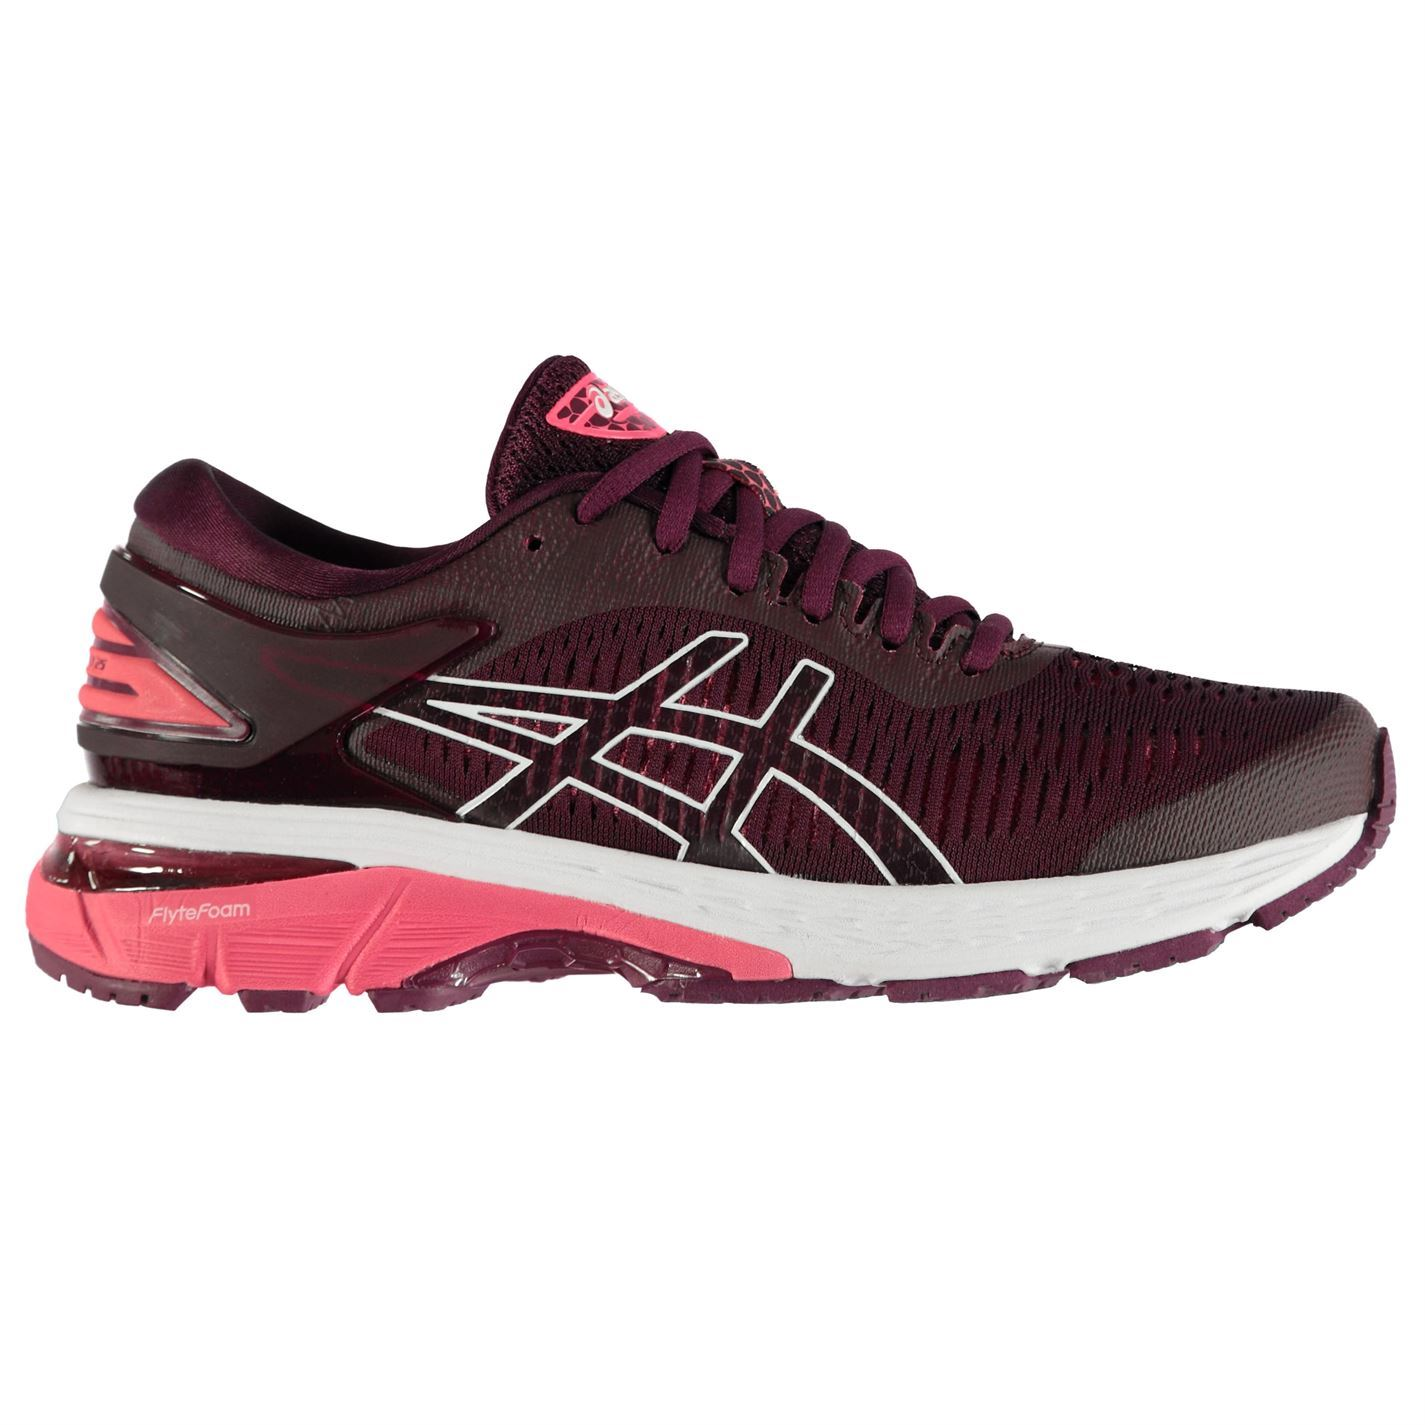 Details about Asics Gel Kayano 25 Running Shoes Womens Jogging Trainers Sneakers Fitness